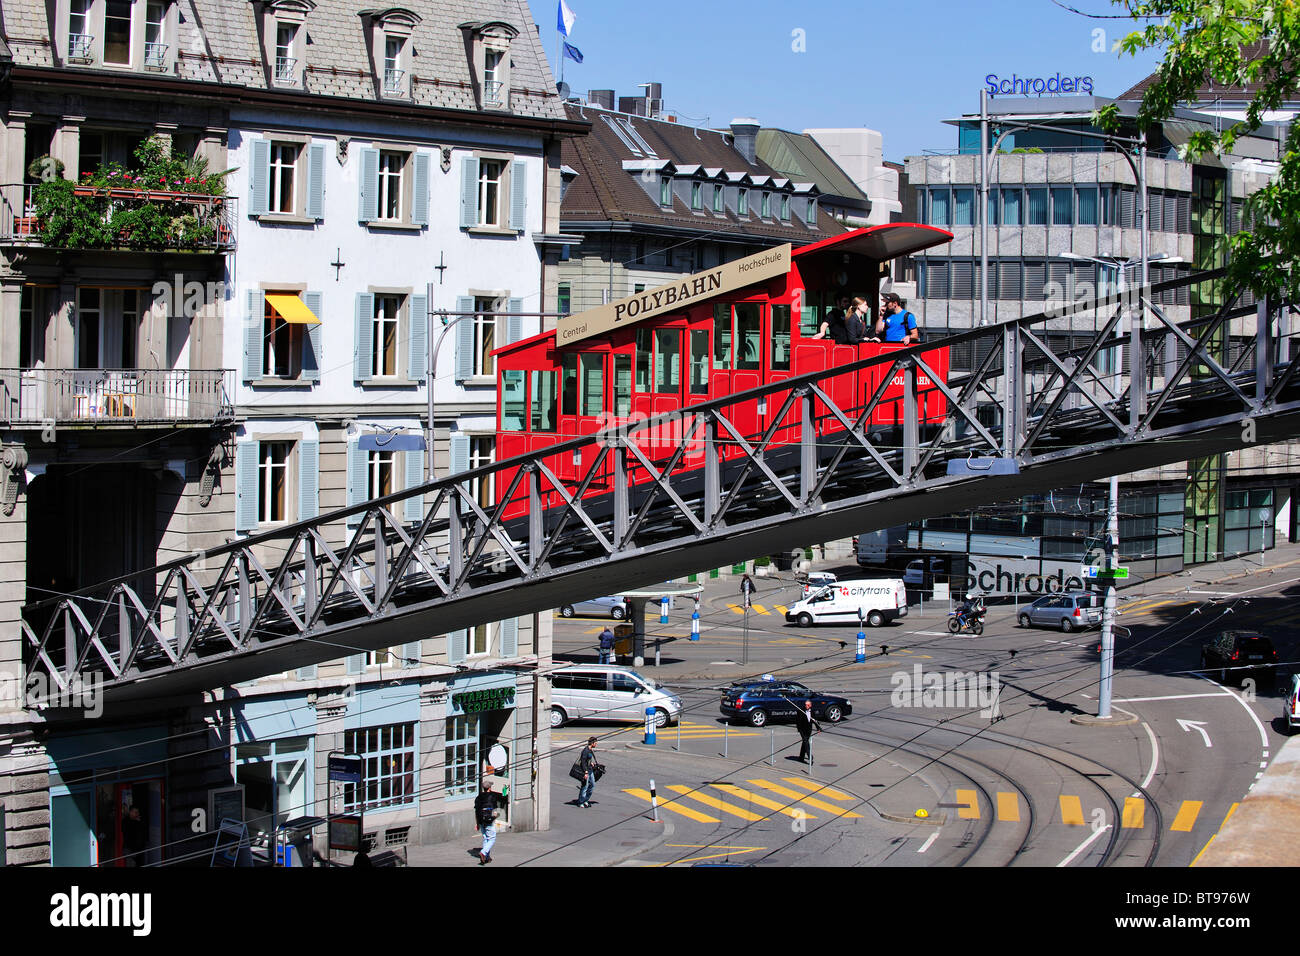 Polybahn crossing the street from Central Square to the University, Zurich, Switzerland, Europe Stock Photo